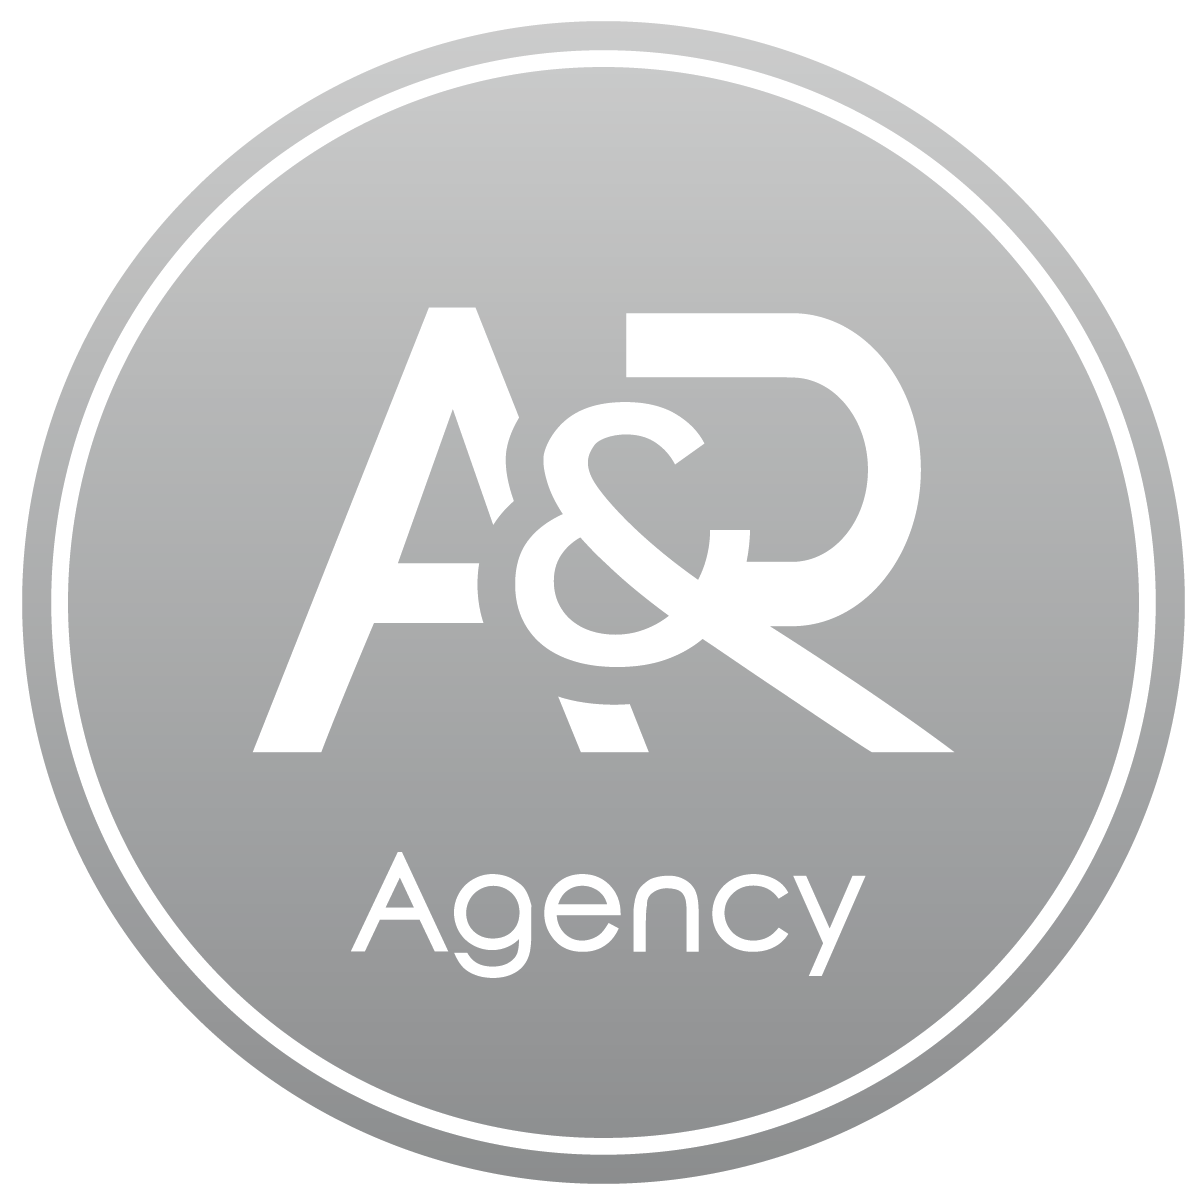 The A&R Agency